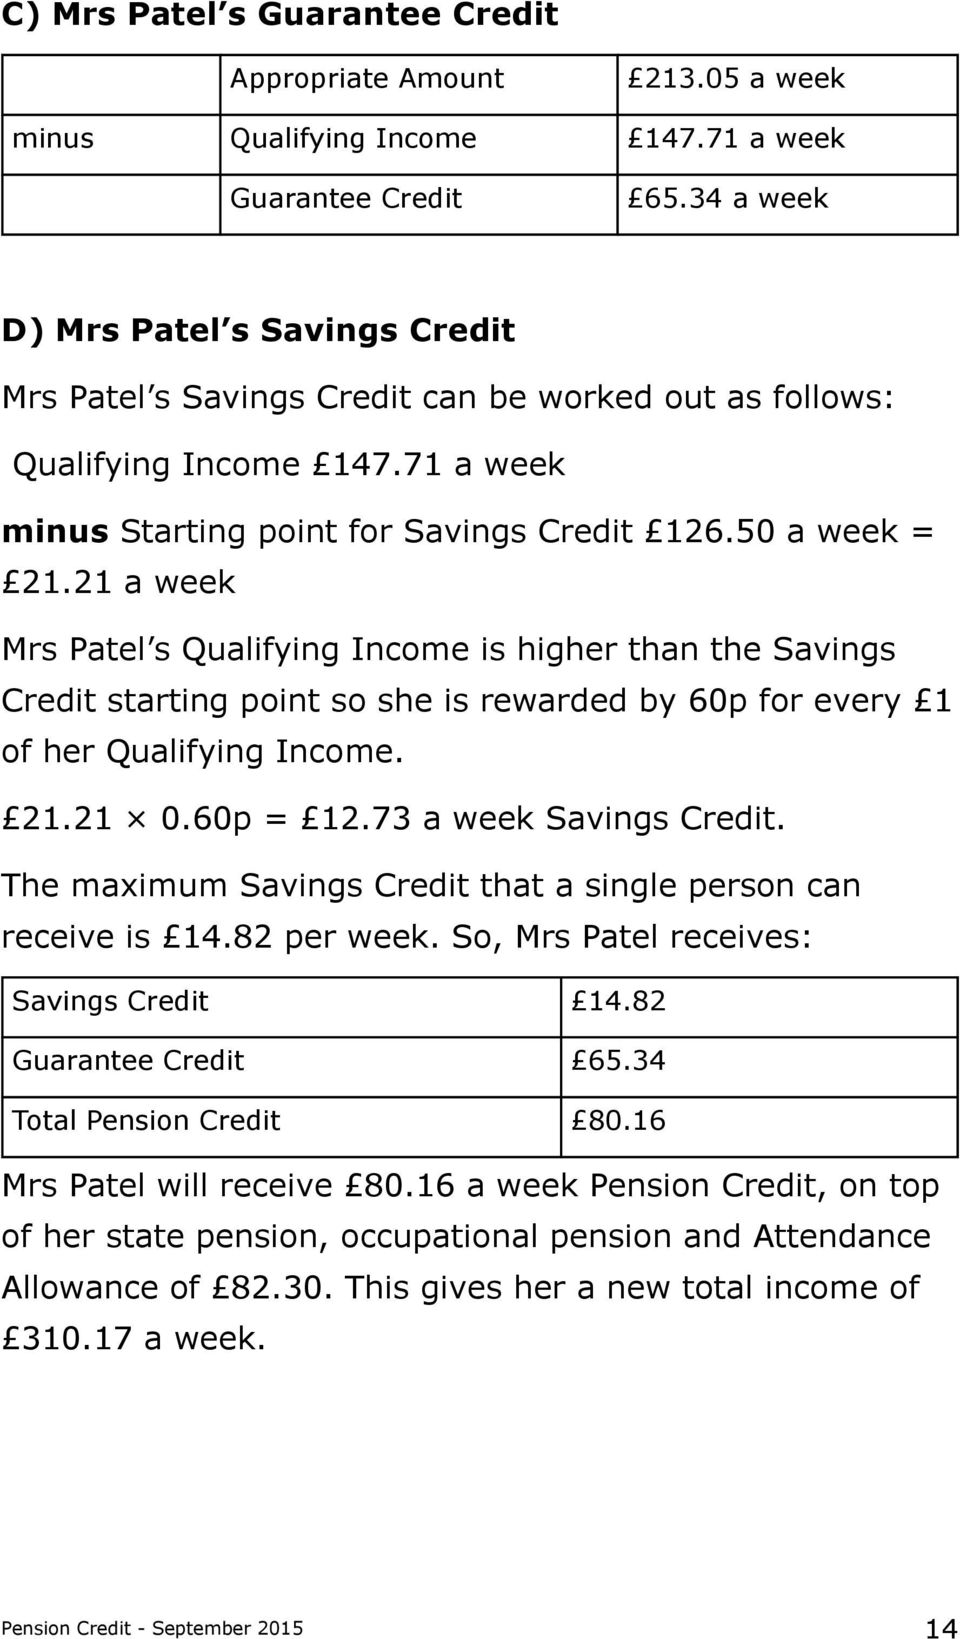 21 a week Mrs Patel s Qualifying Income is higher than the Savings Credit starting point so she is rewarded by 60p for every 1 of her Qualifying Income. 21.21 0.60p = 12.73 a week Savings Credit.